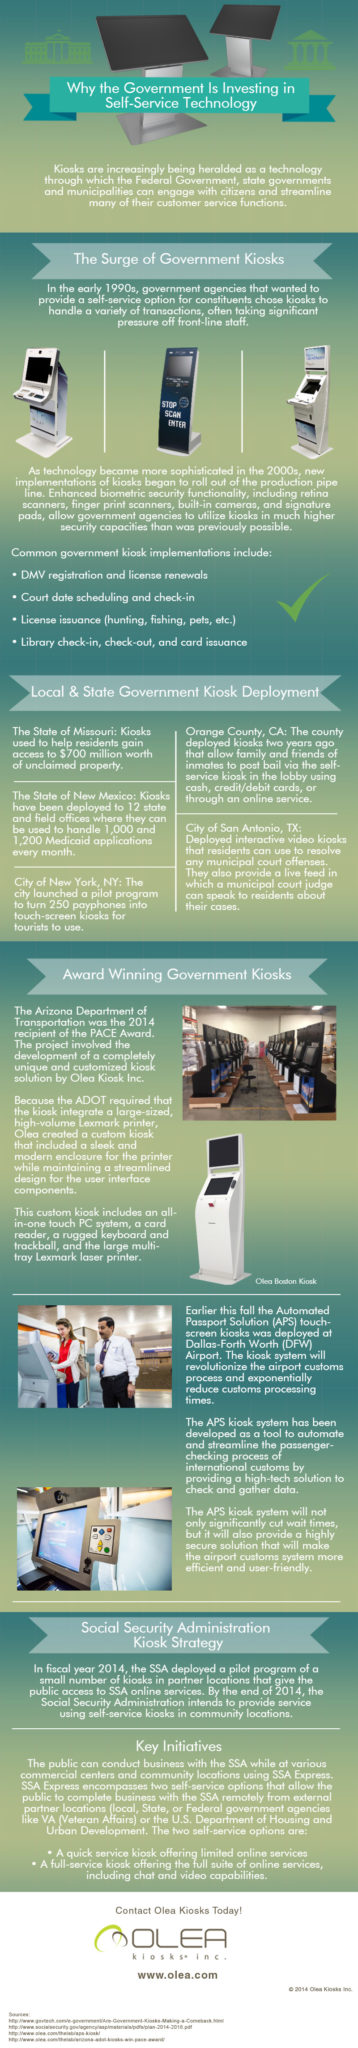 Government Kiosks - Why the government is increasing its investment in kiosk technologies